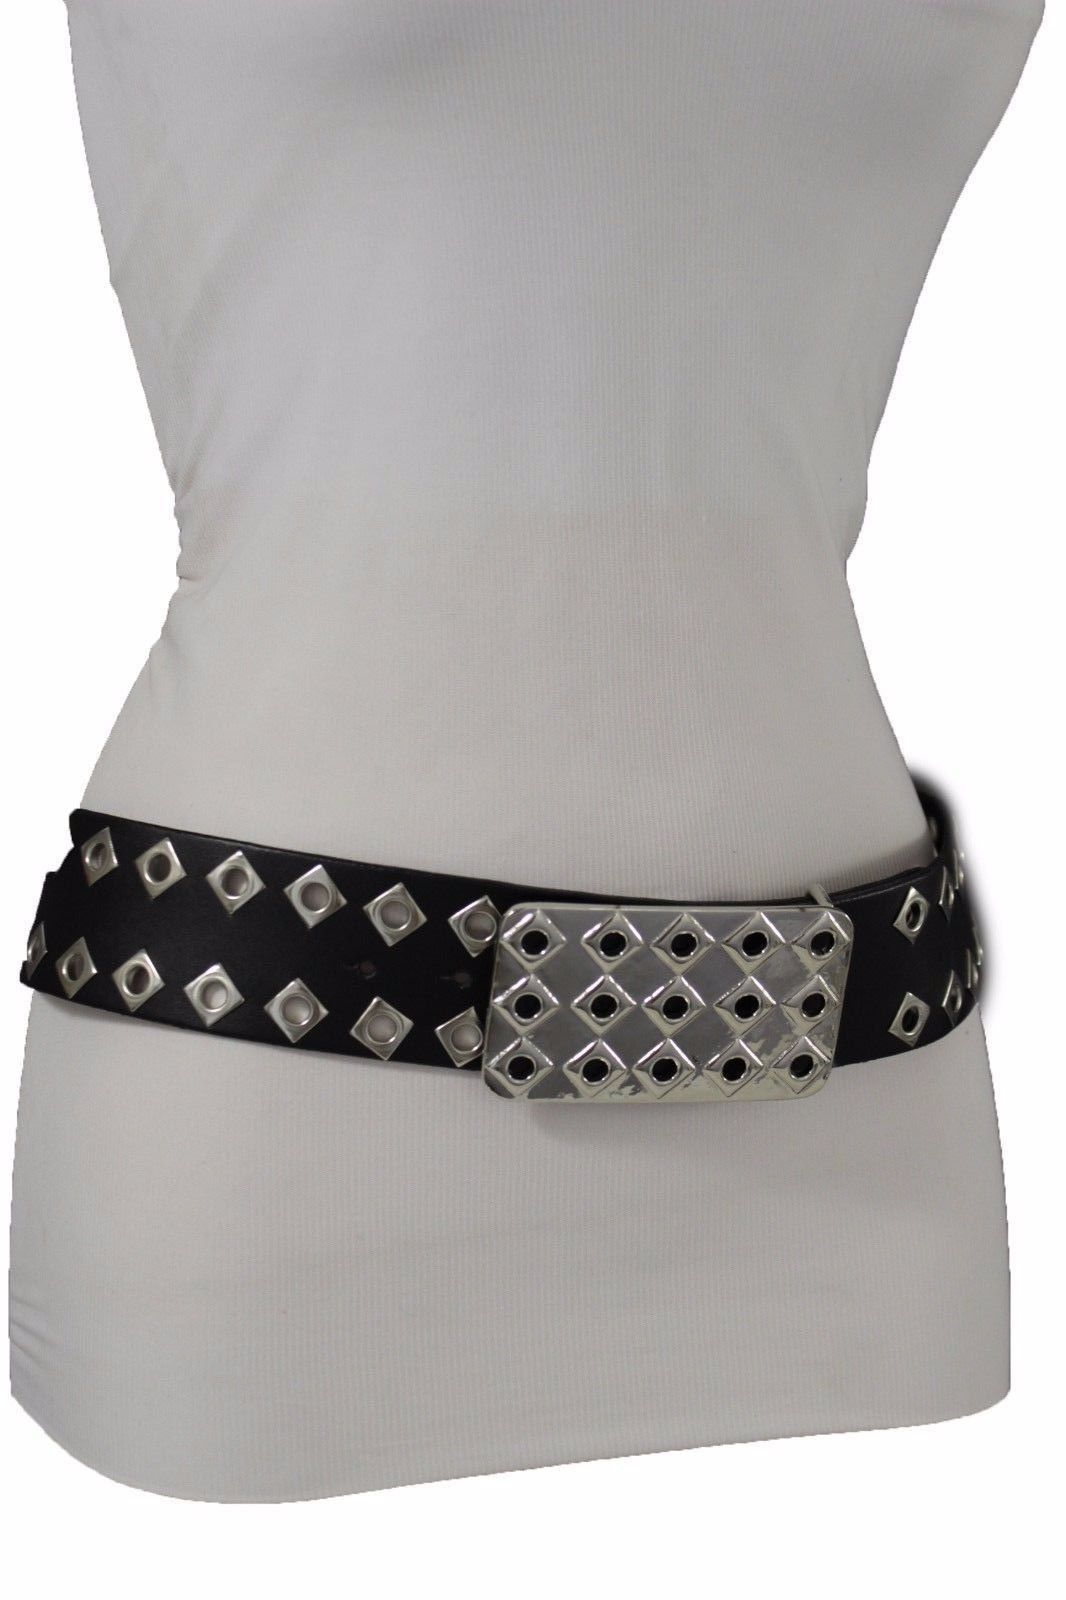 Ladies Womens Black Faux Leather Silver Metal Stud Gothic Punk Rock Fashion Belt